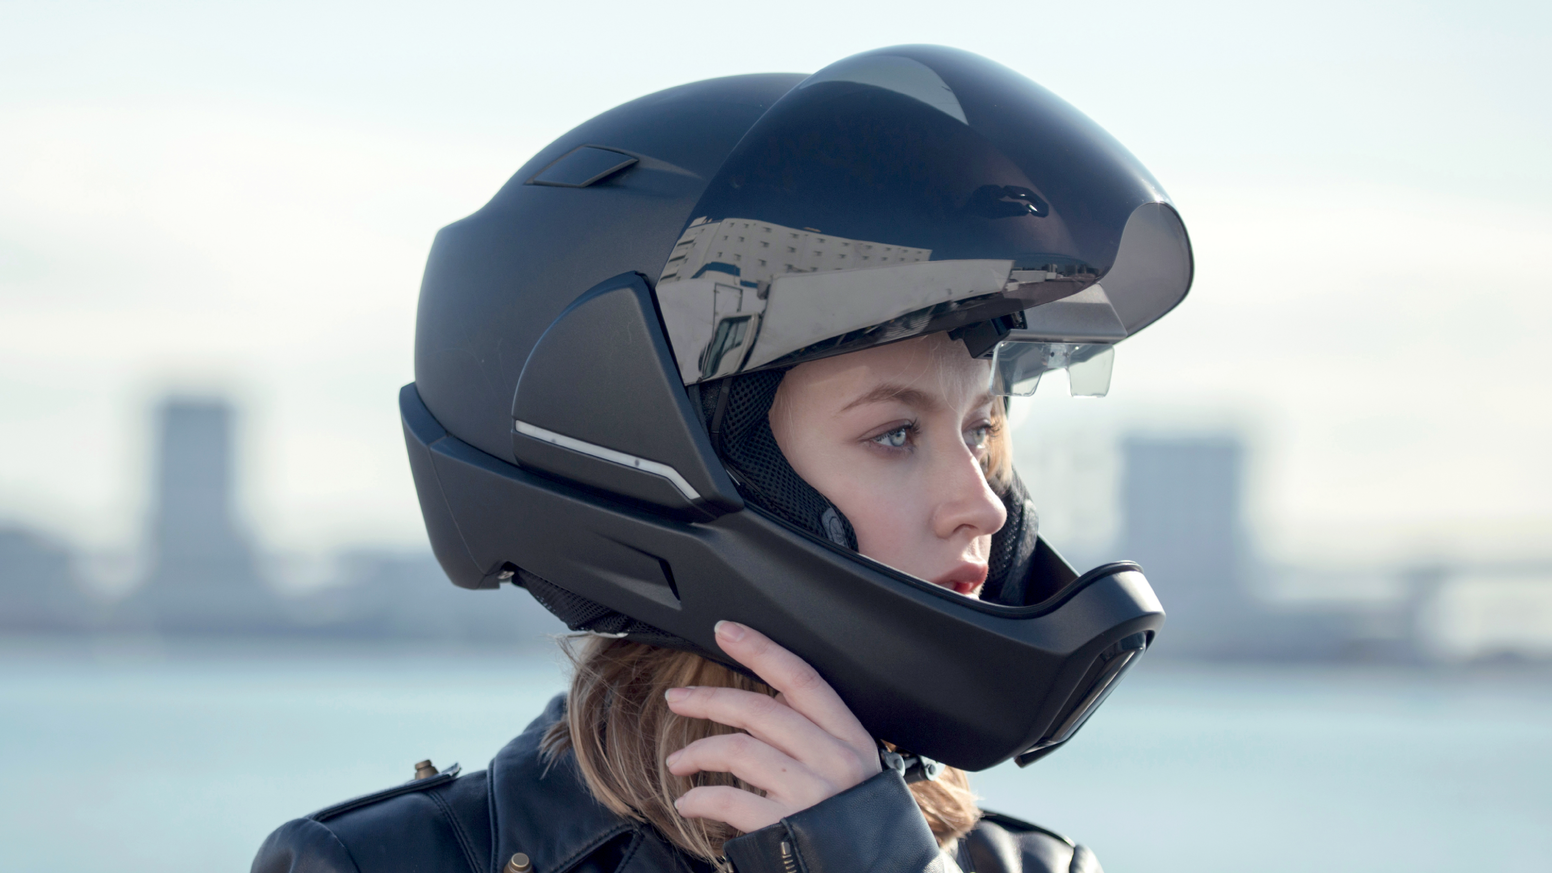 Introducing Customized Motorcycle Helmet For You